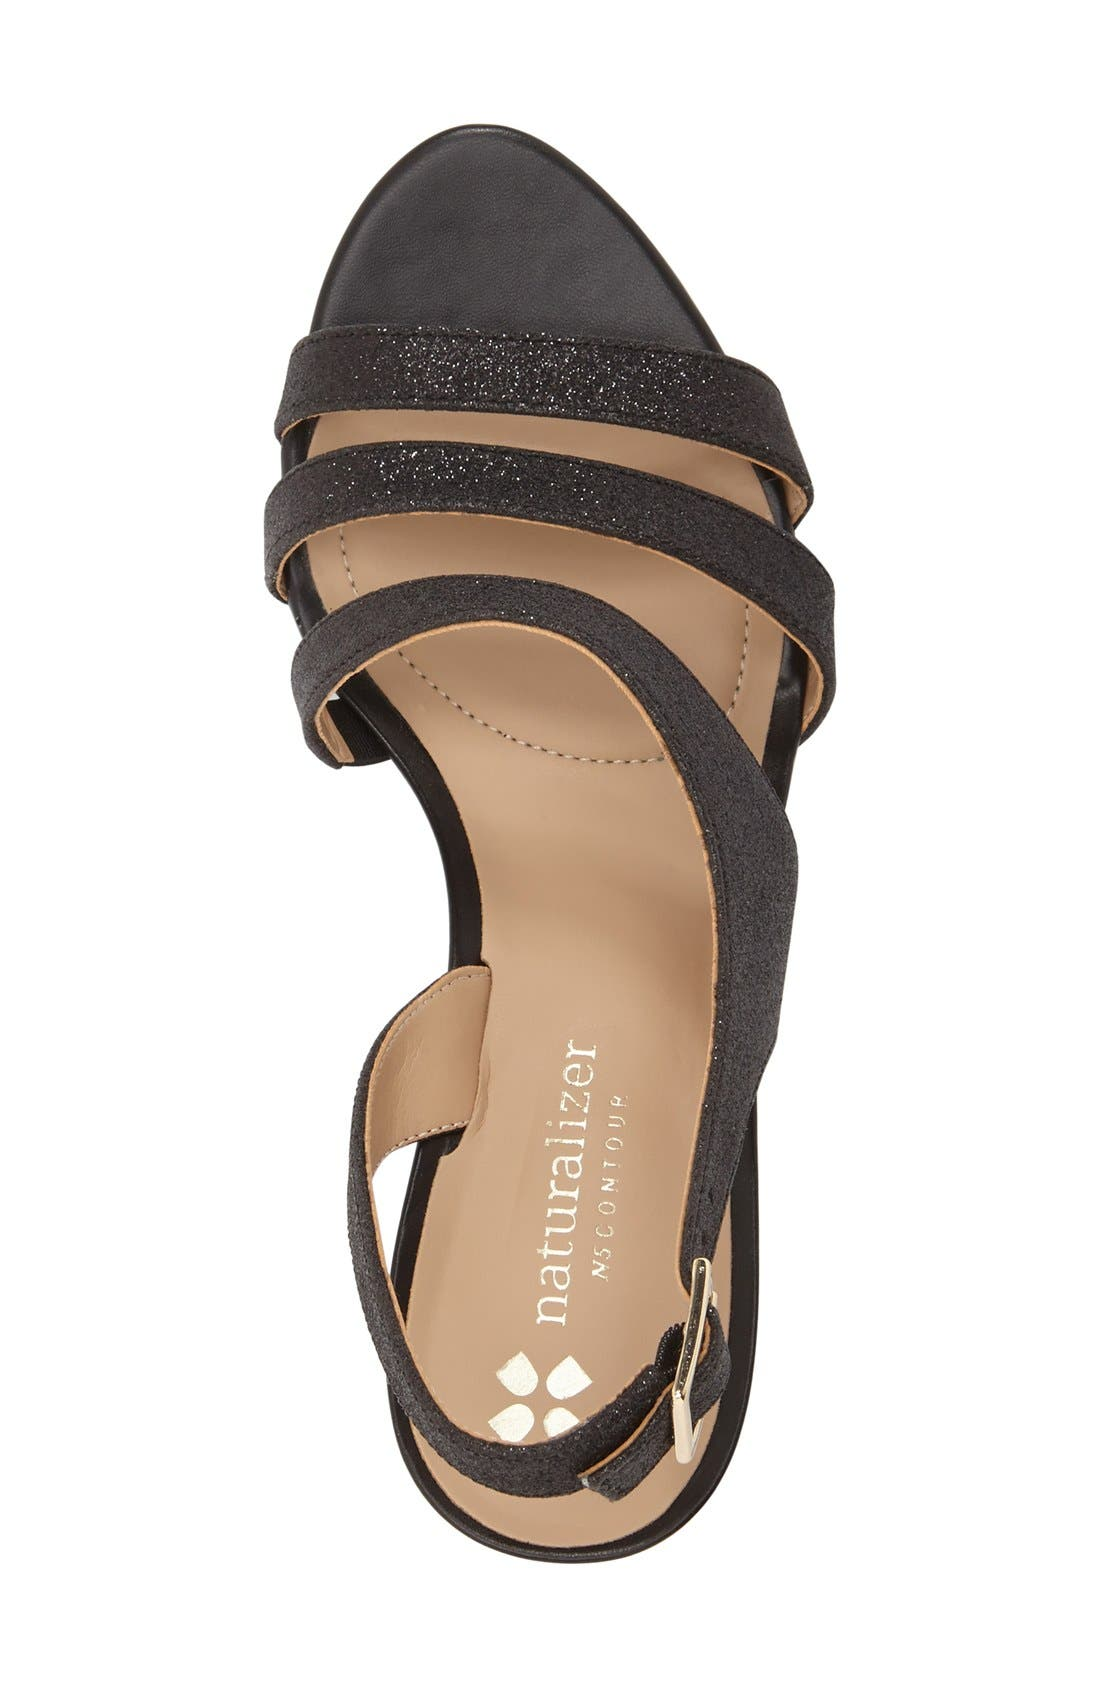 Taimi Sandal,                             Alternate thumbnail 2, color,                             Black Glitter